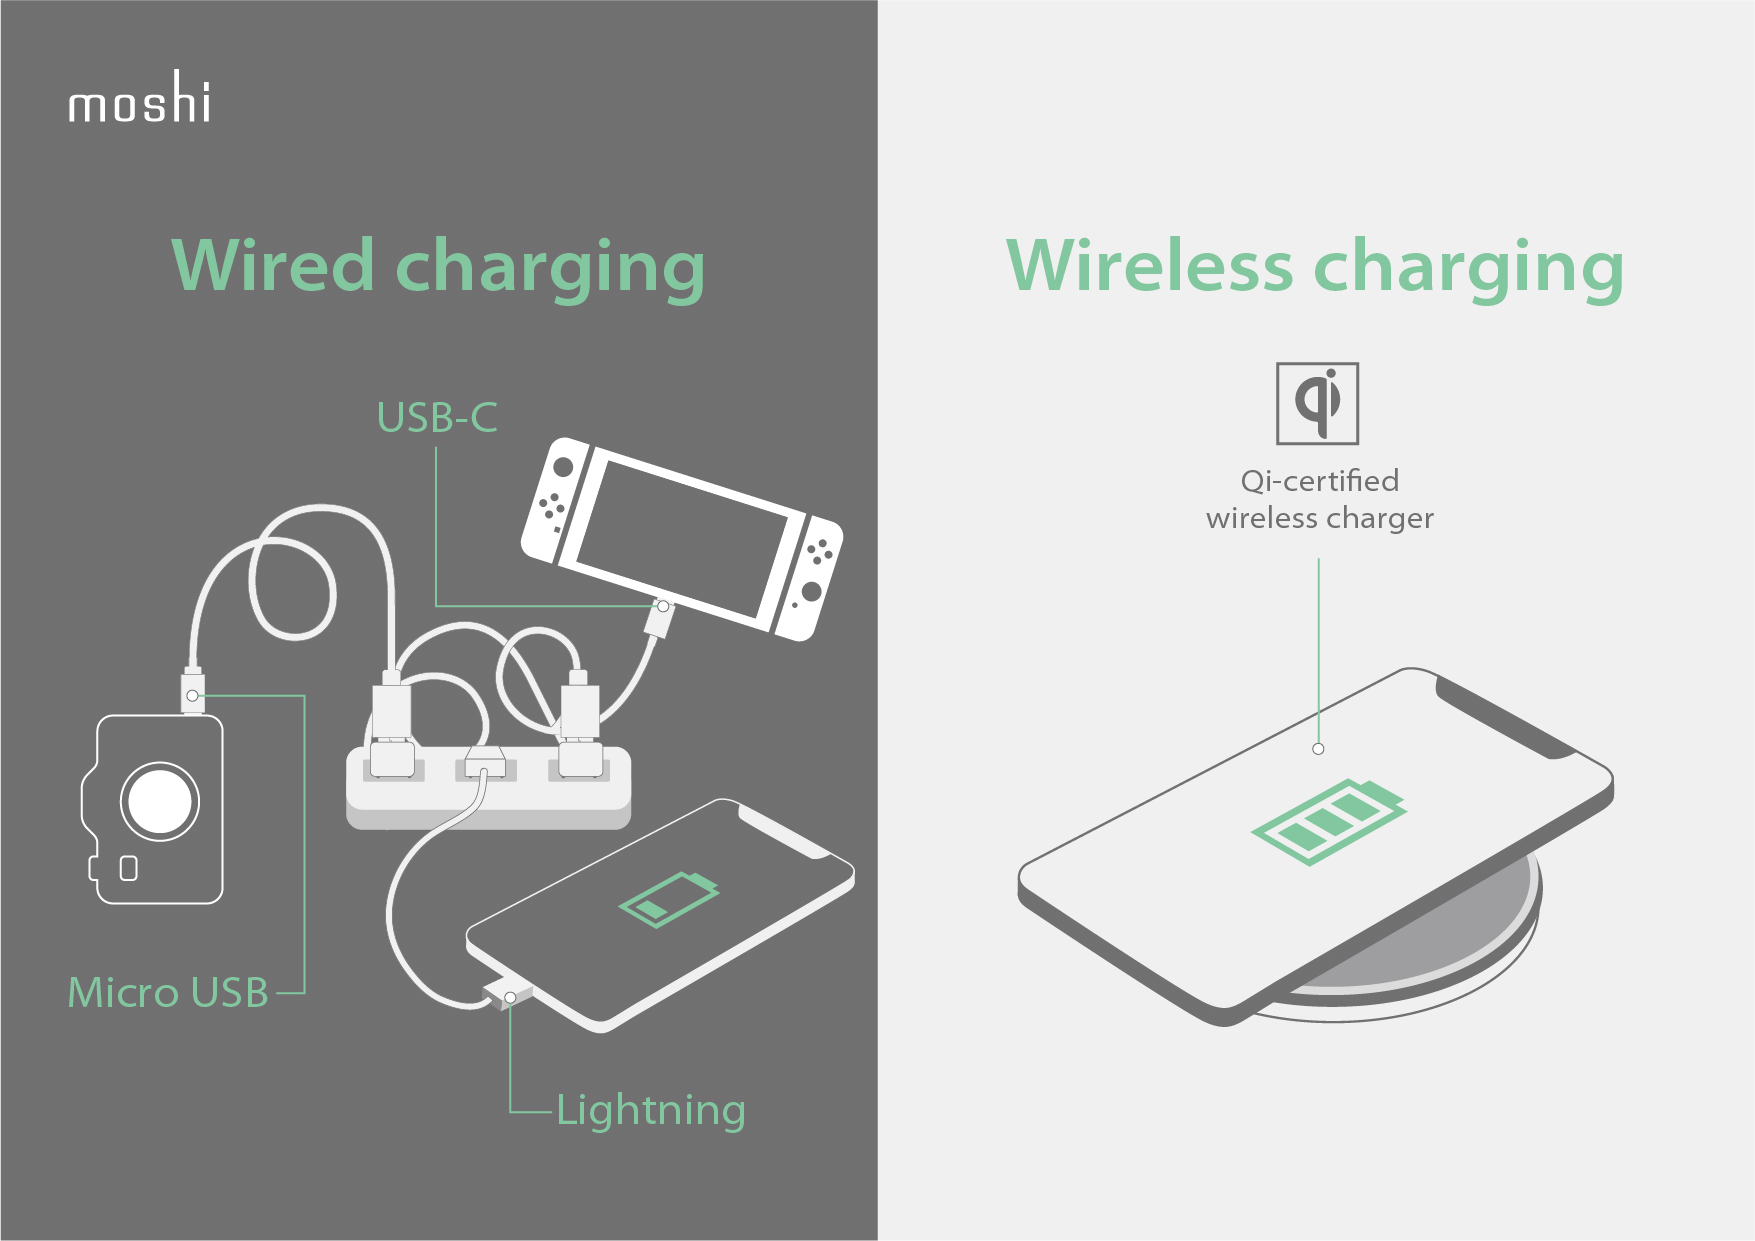 A side by side comparison showing various cables plugged in and tangled versus a smartphone charging wirelessly